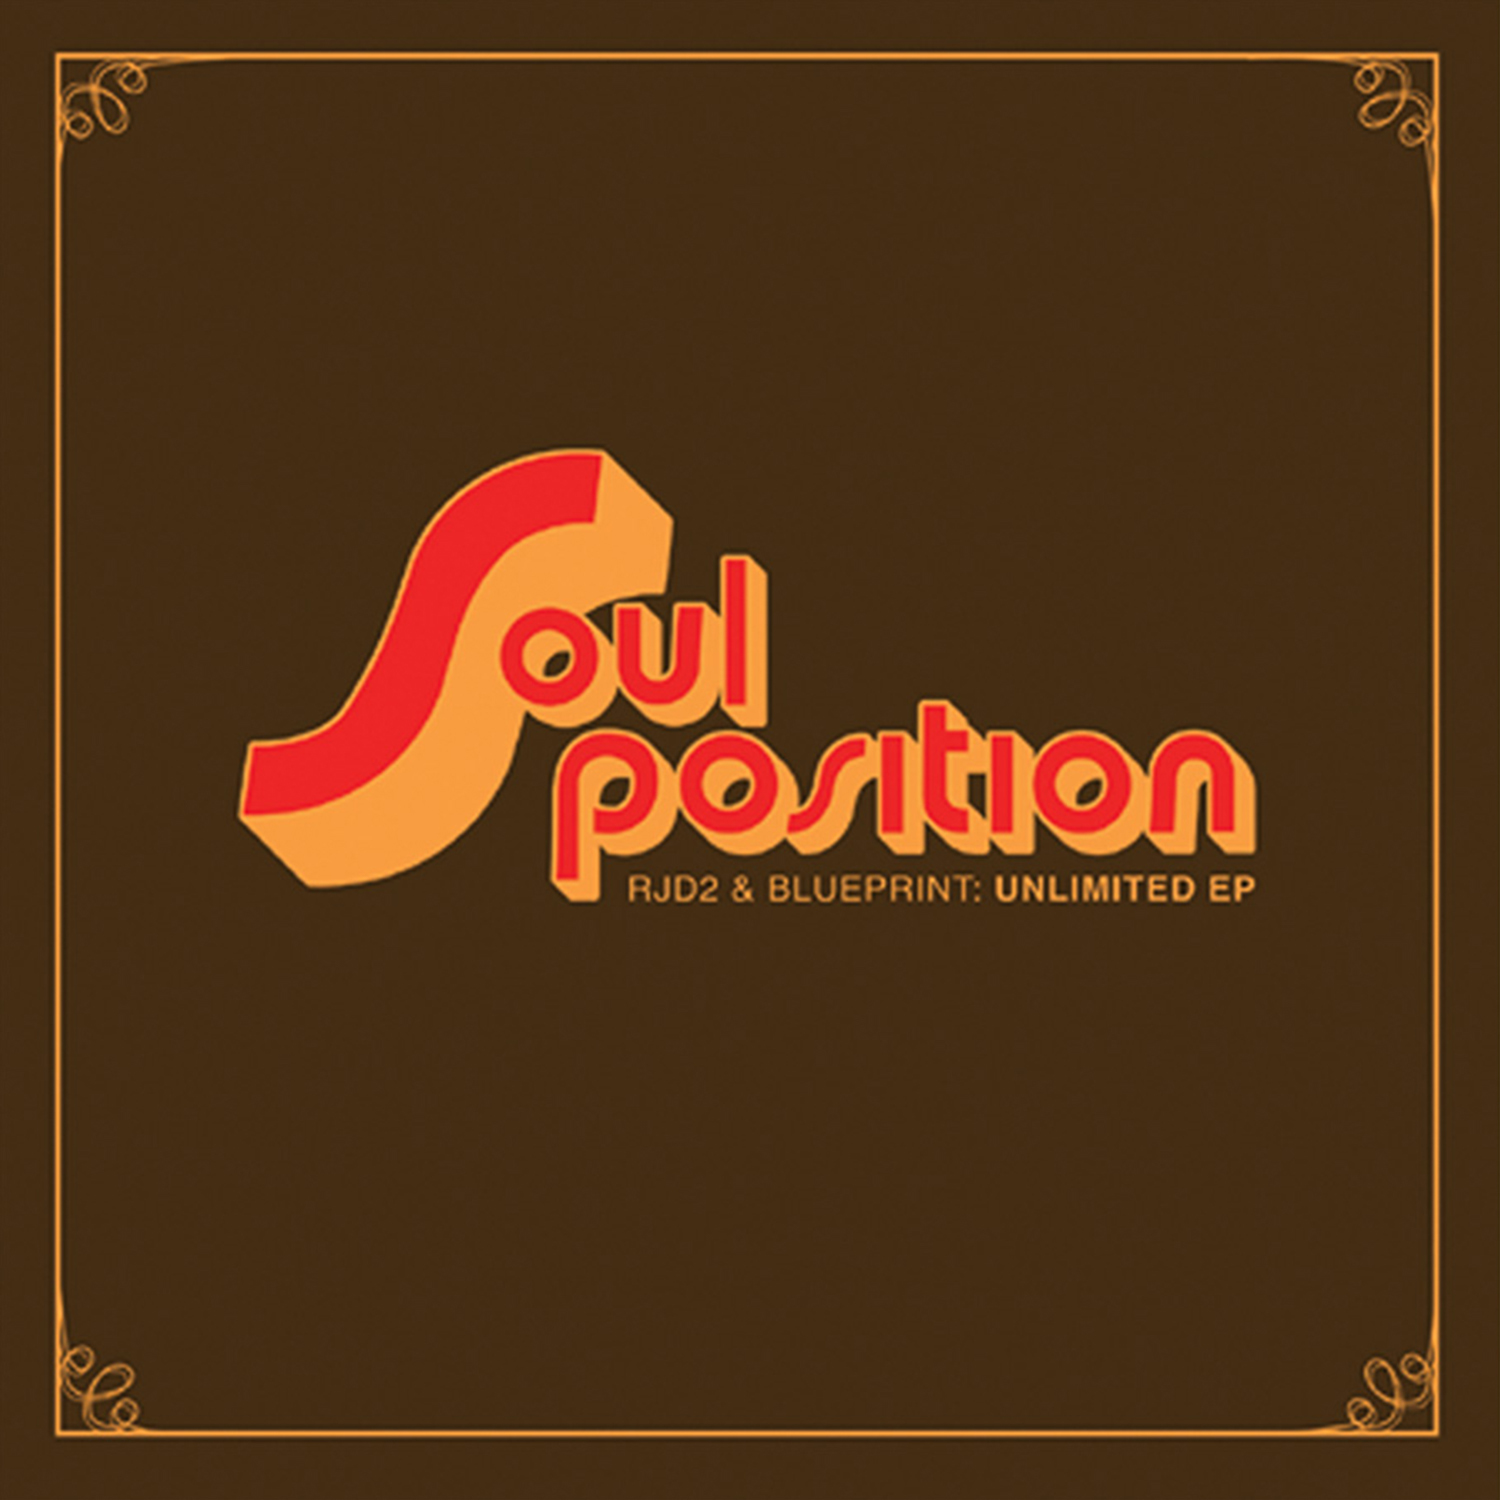 Soul Position Unlimited Ep